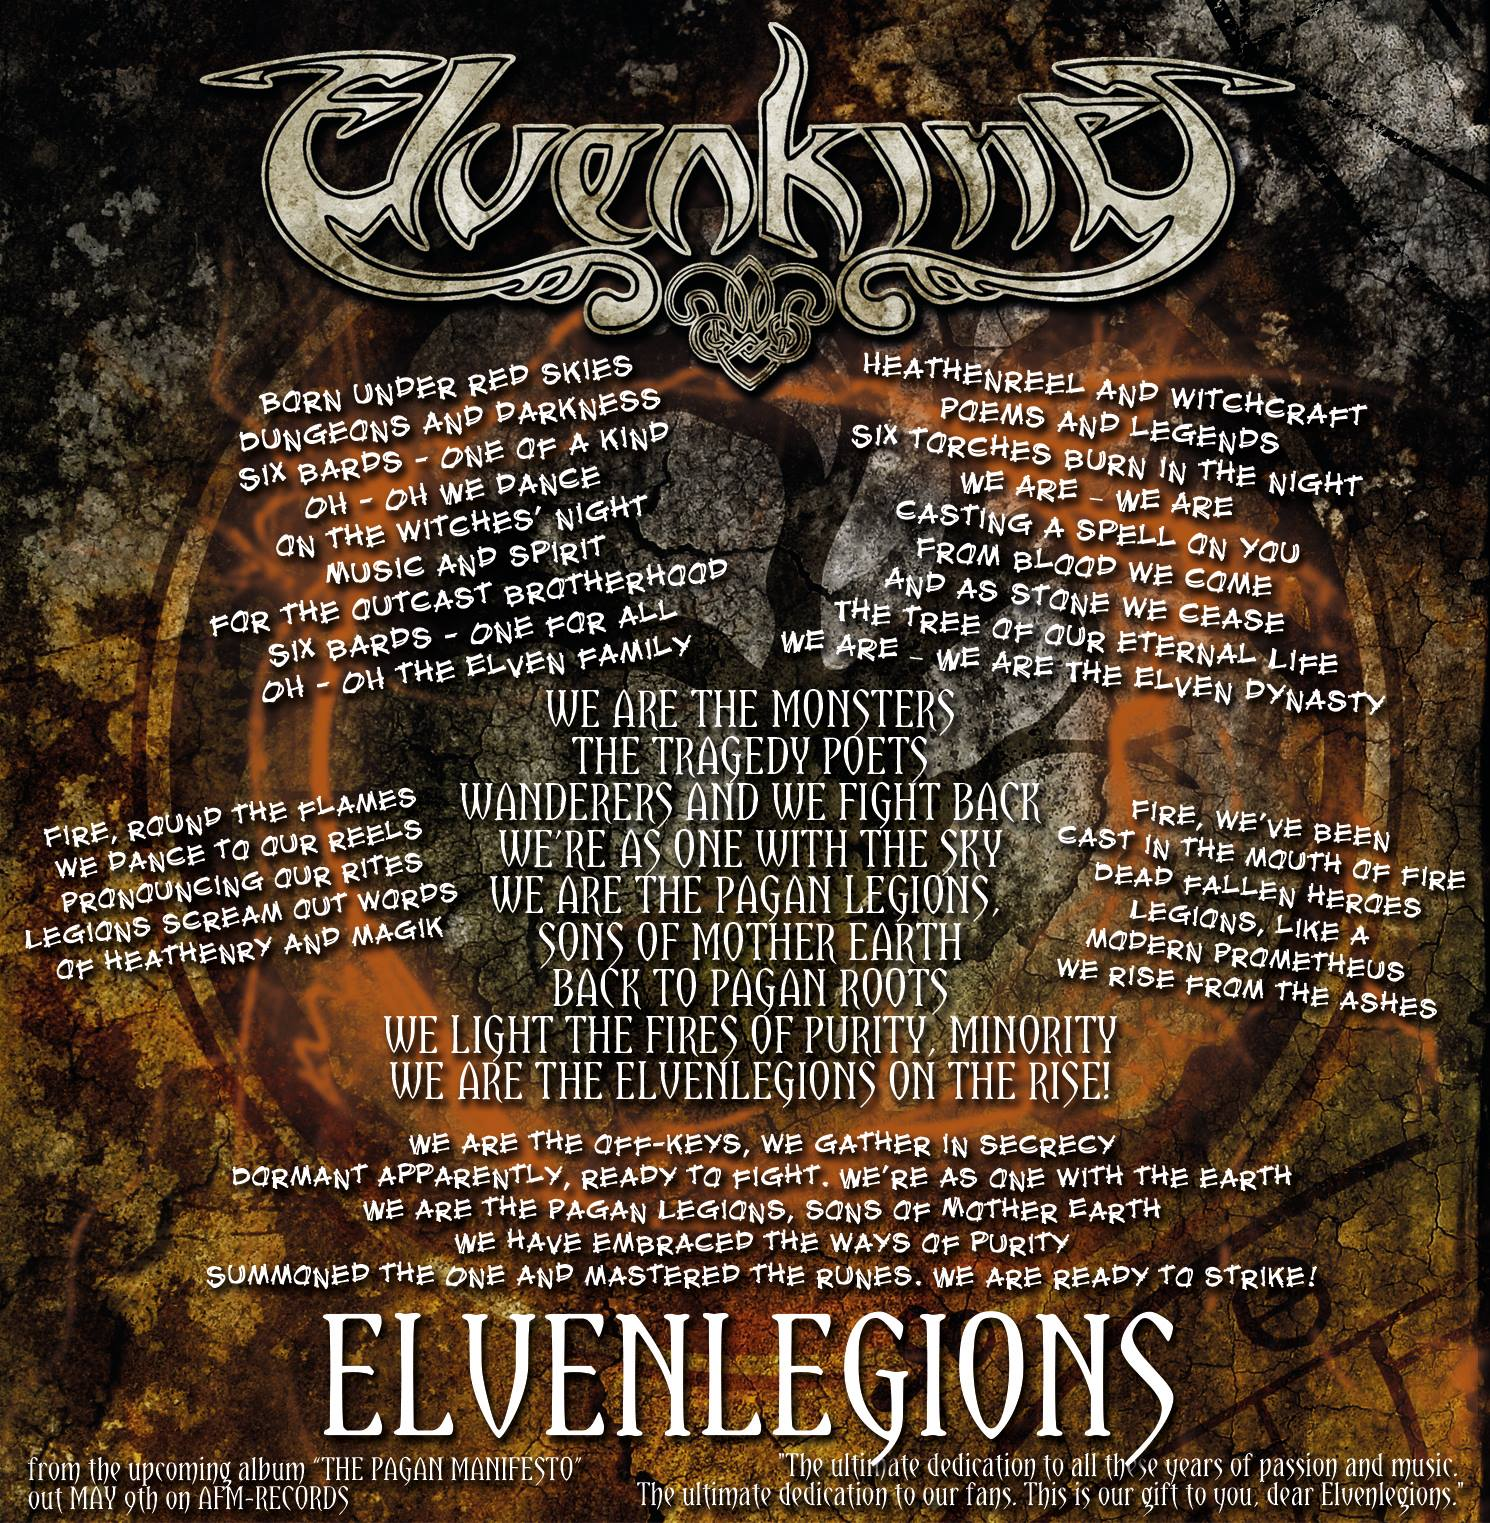 ELVENLEGIONS videoclip & lyrics